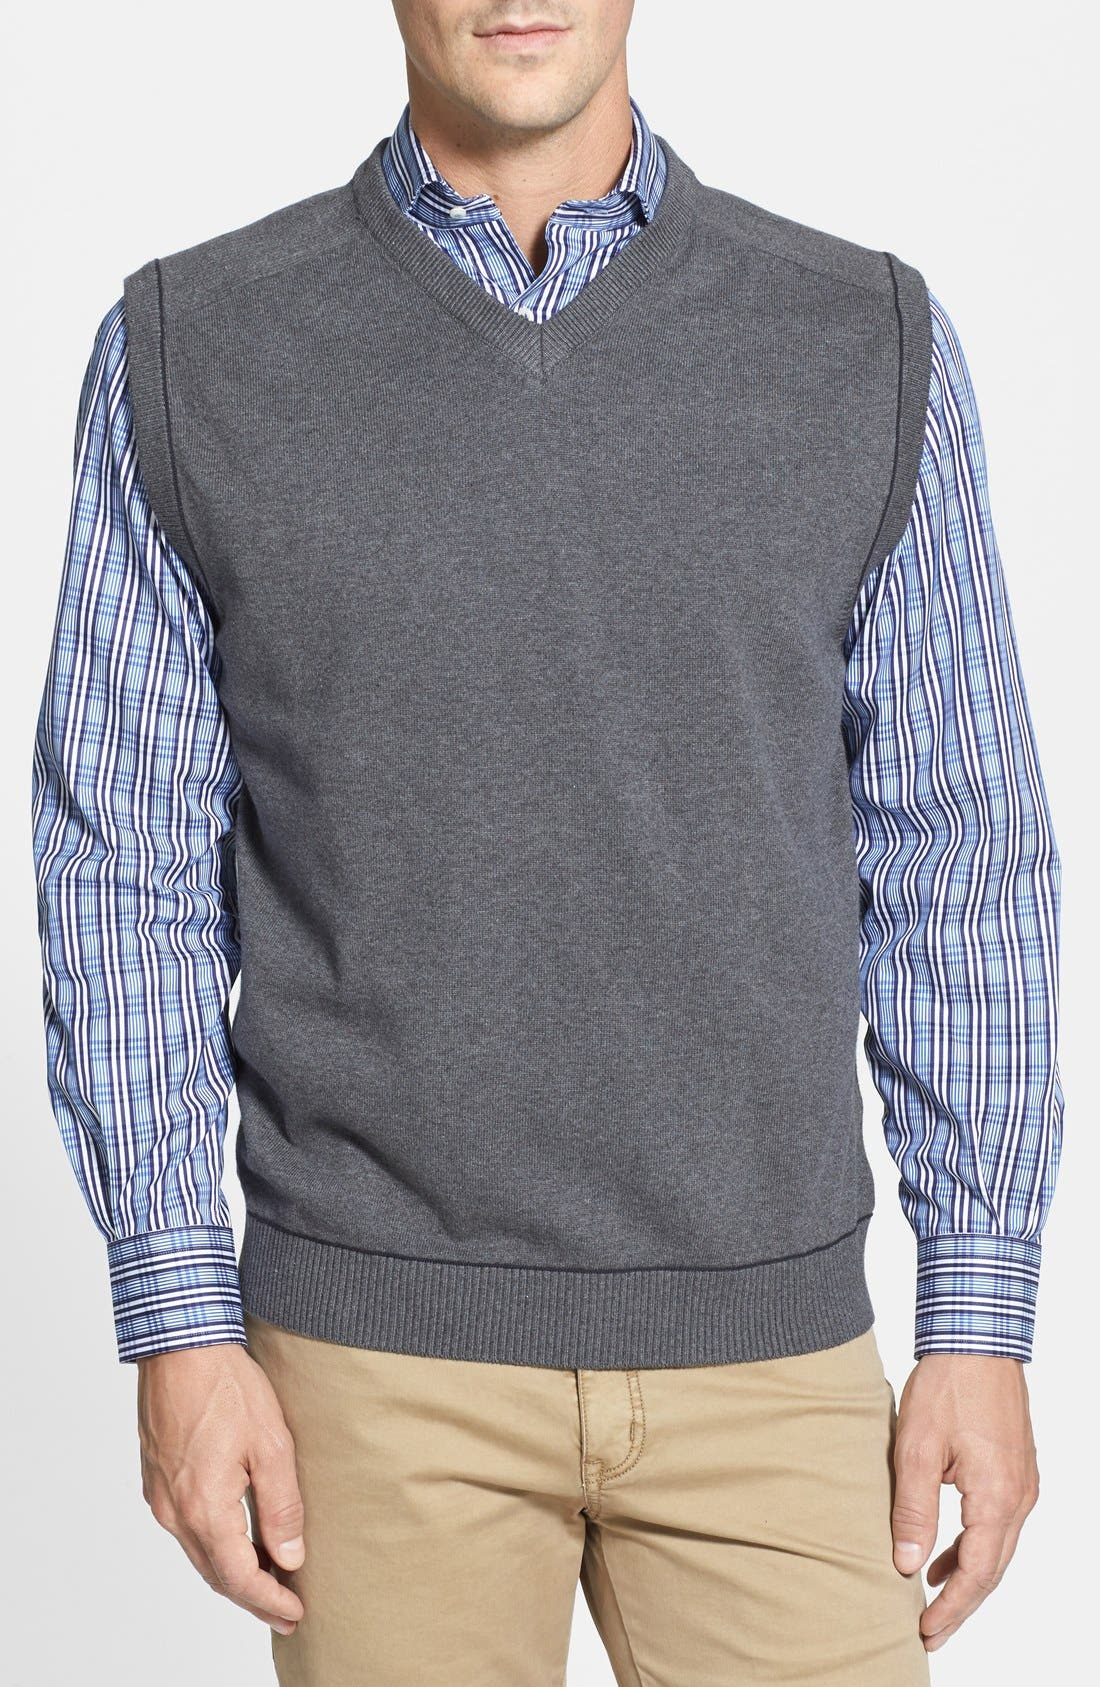 Broadview V-Neck Sweater Vest,                             Main thumbnail 1, color,                             Charcoal Heather